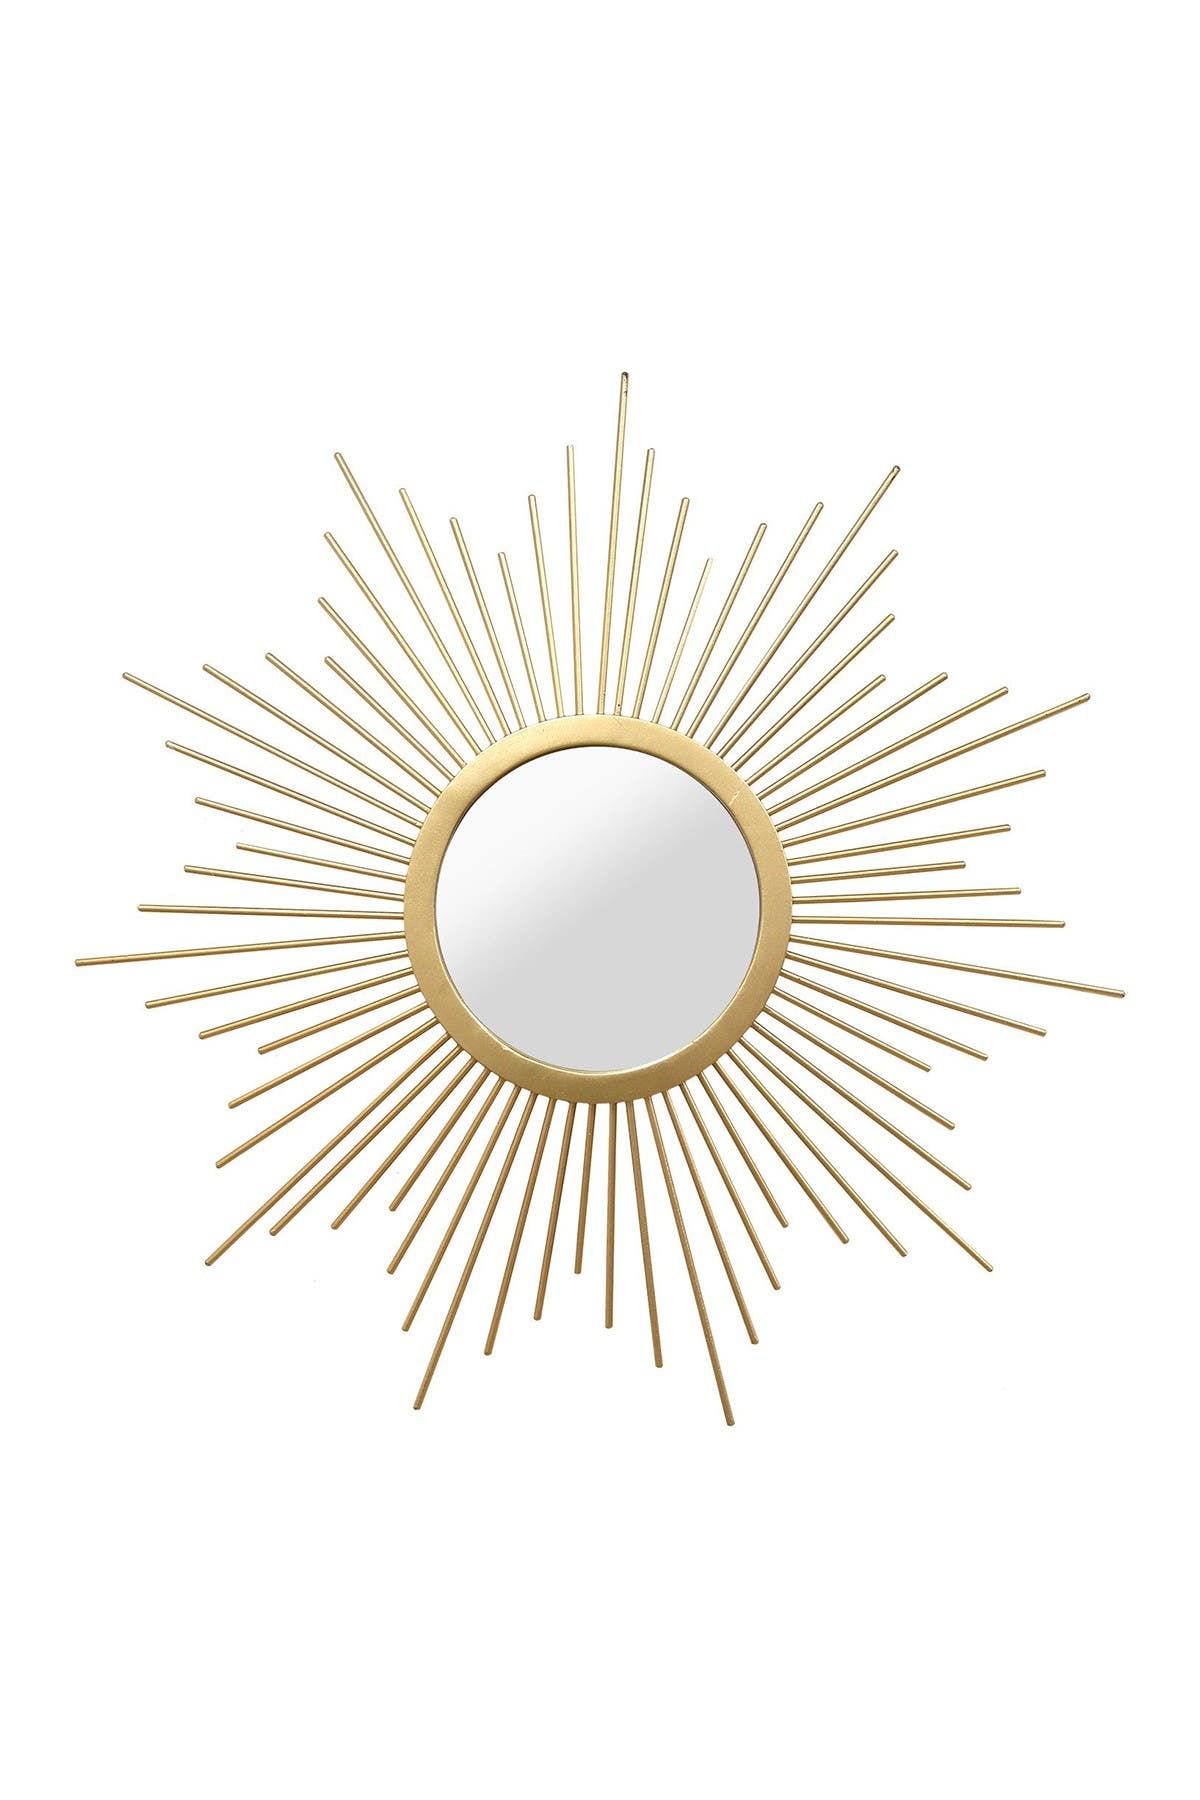 Image of Stratton Home Gold Bella Wall Mirror